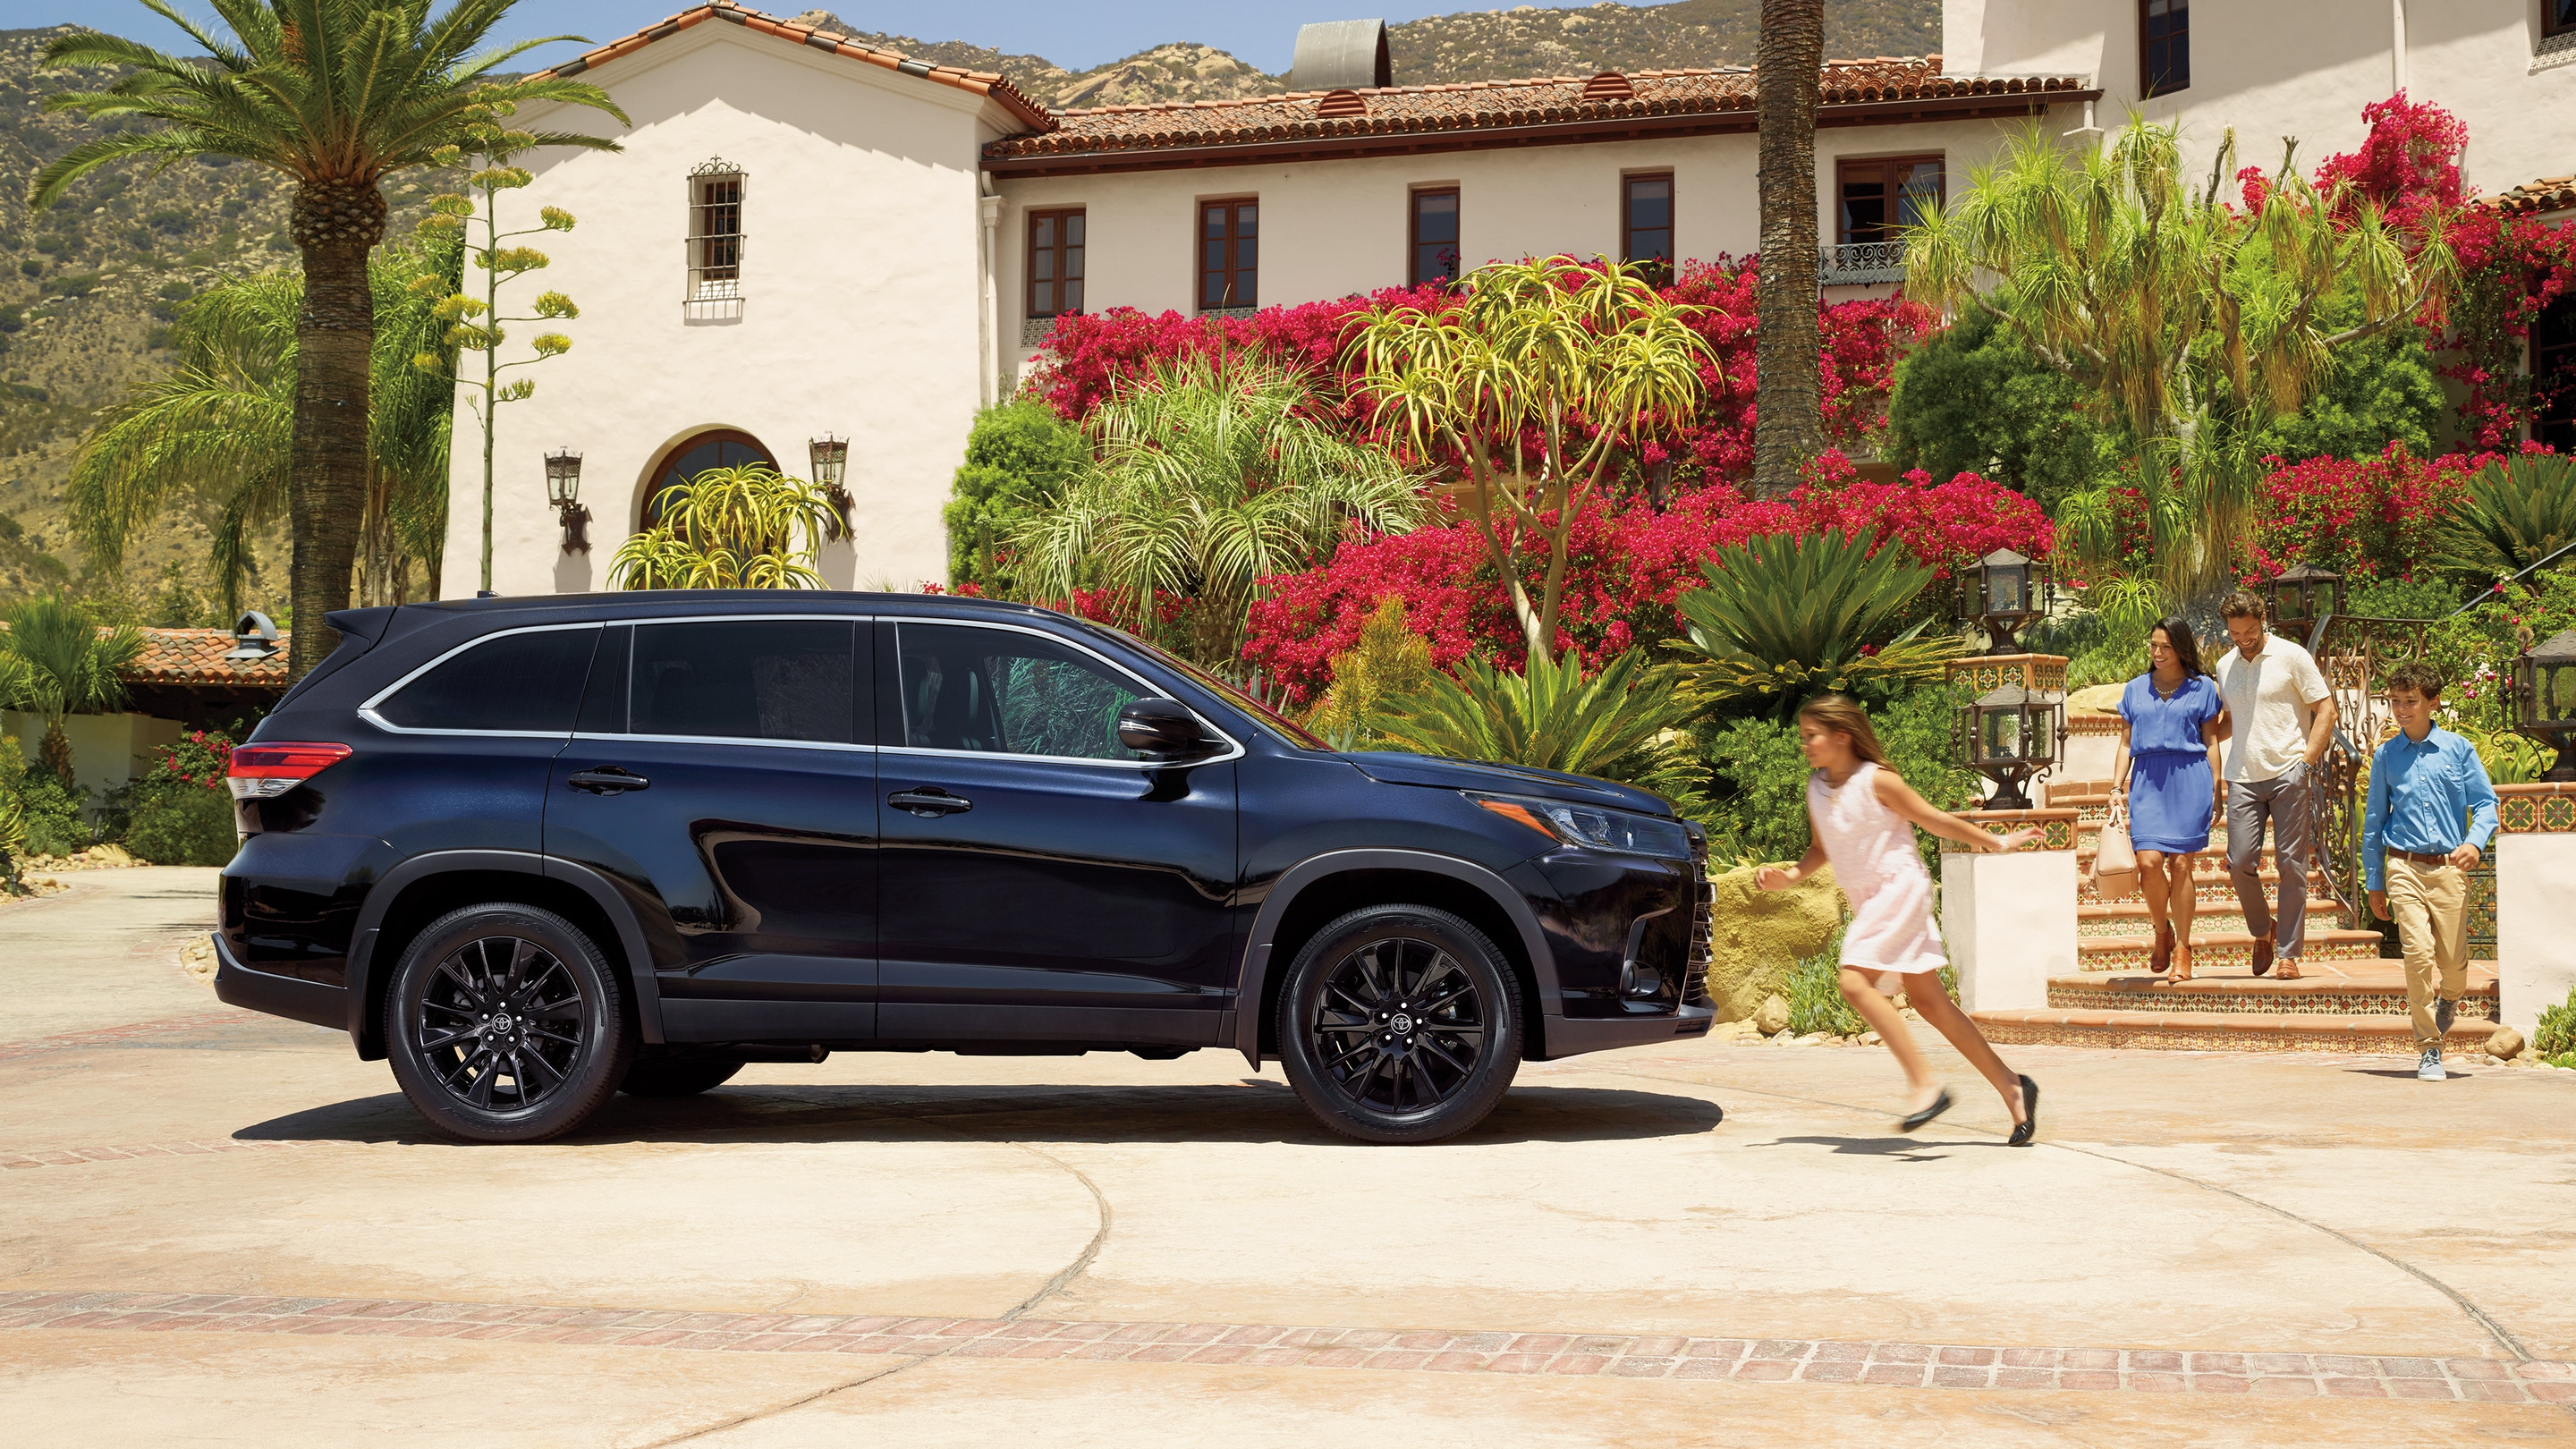 2019 Toyota Highlander Trim Levels near Glen Mills, PA